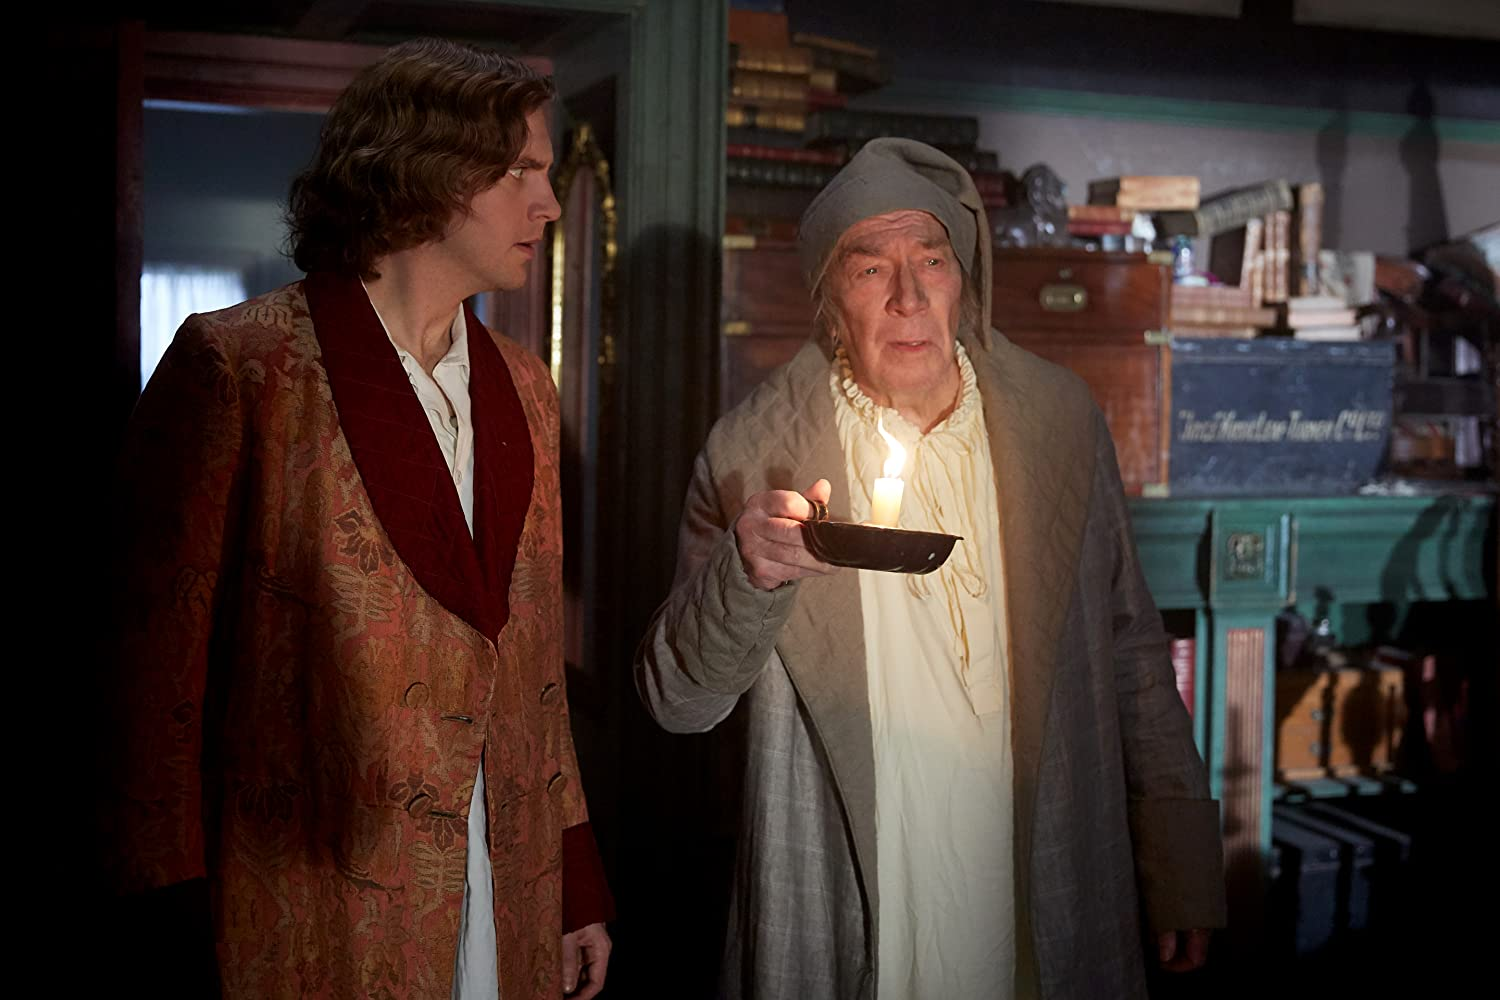 Christopher Plummer and Dan Stevens in The Man Who Invented Christmas (2017)